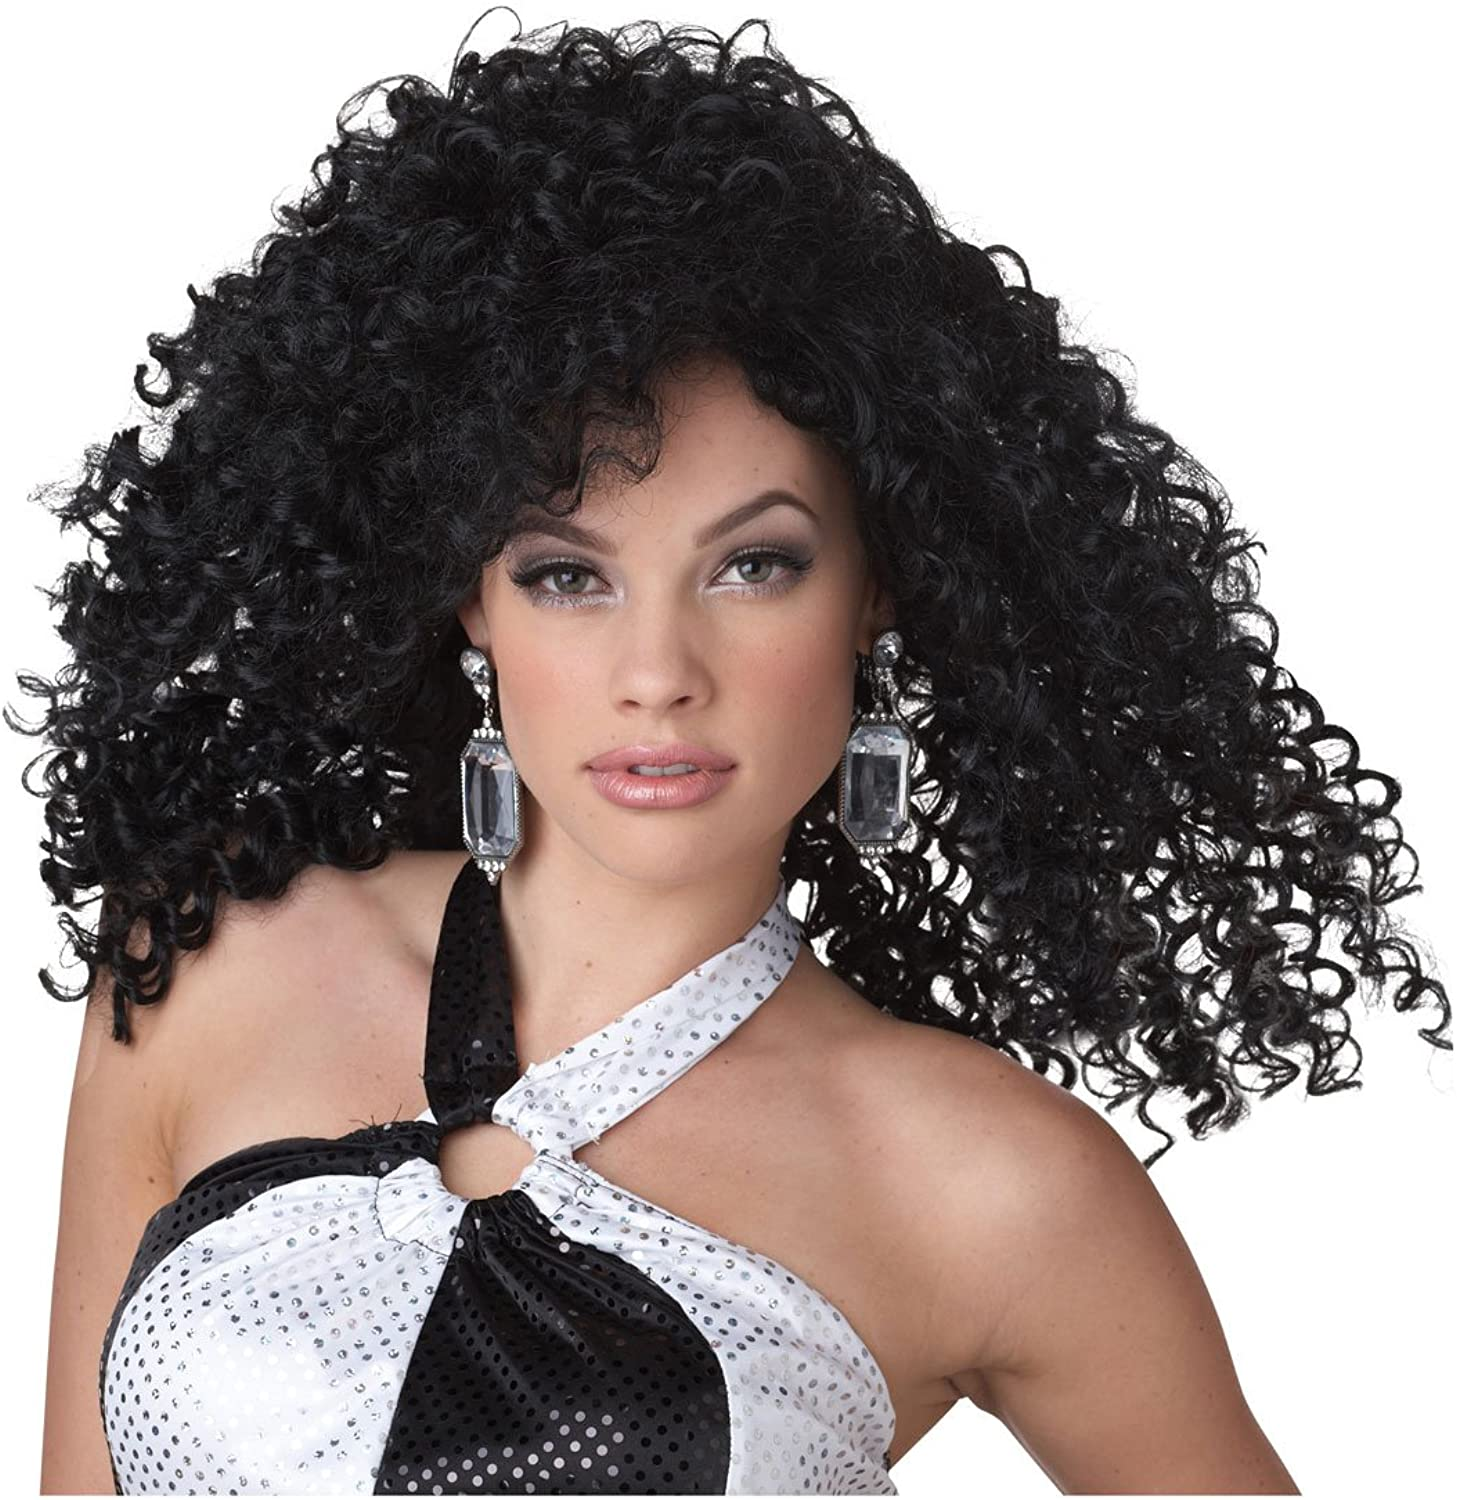 California Costumes Dancing Queen Costume Wig (Black)-Standard